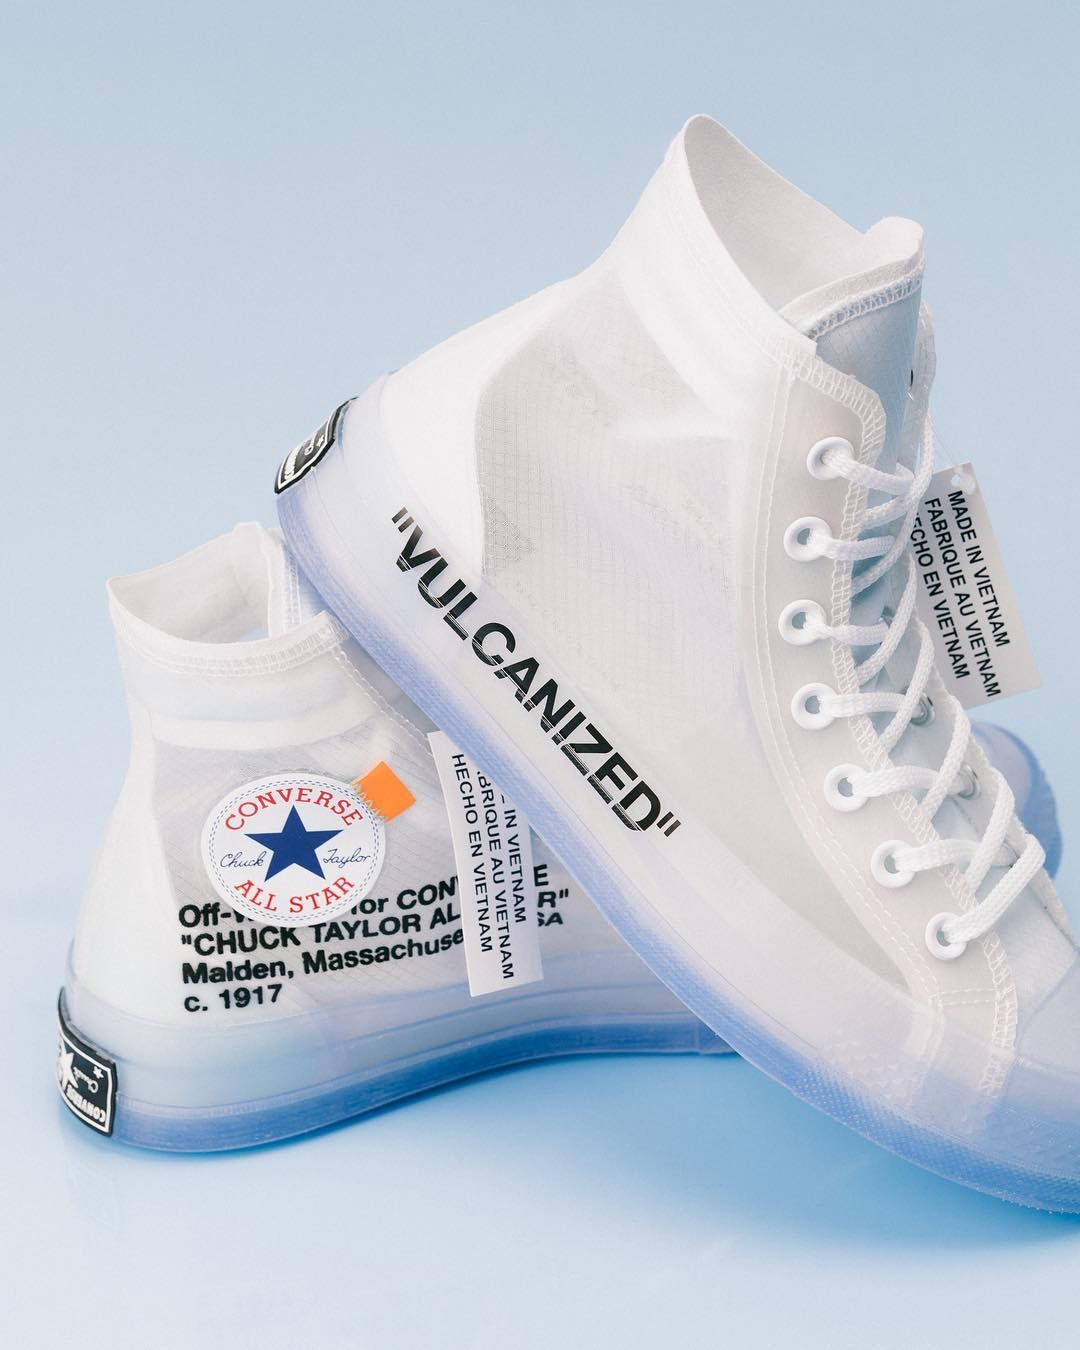 x Converse Chuck Taylor. Get yours